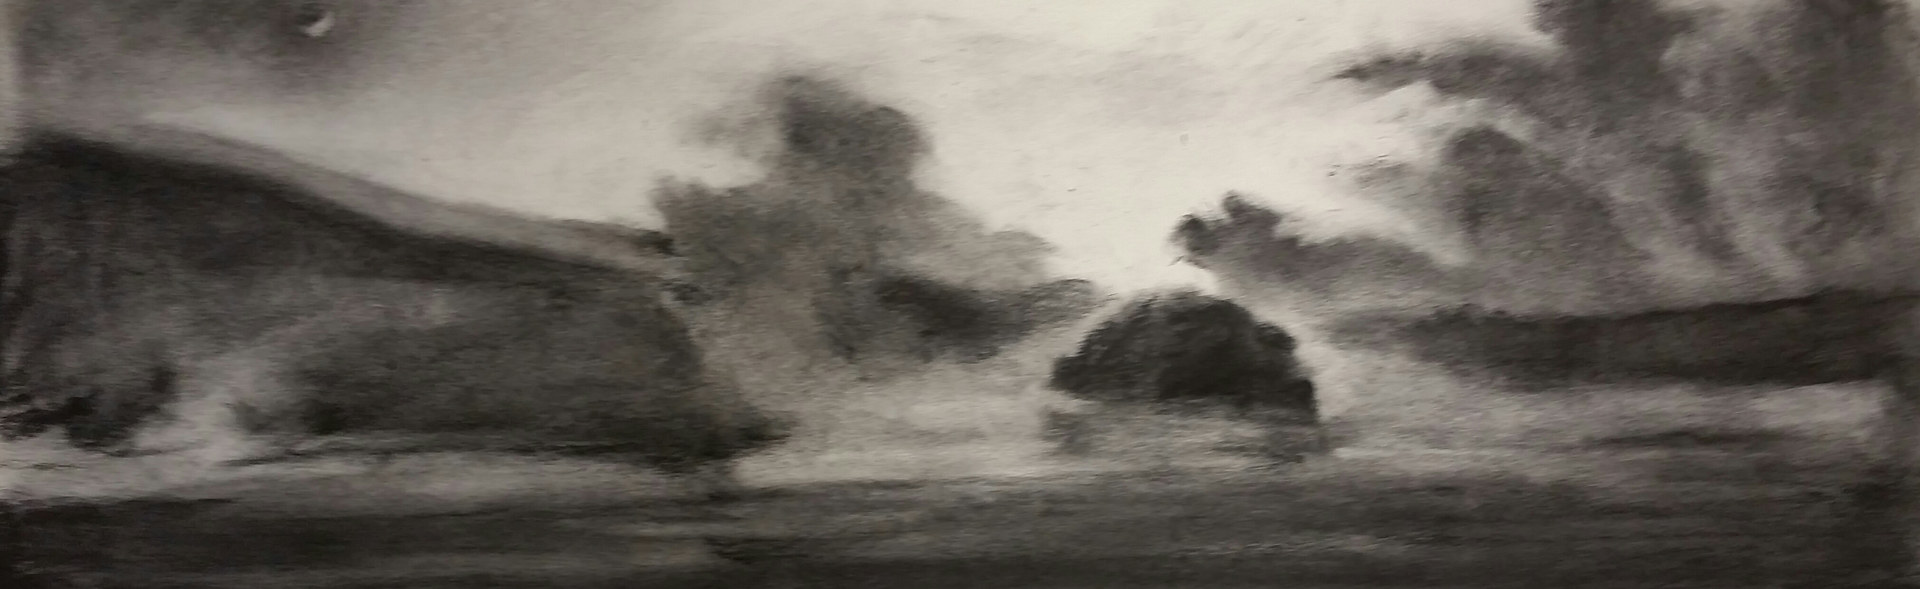 Drawing  Mist at Indian Mound charcoal 8x25in  by Michael  Gaudreau